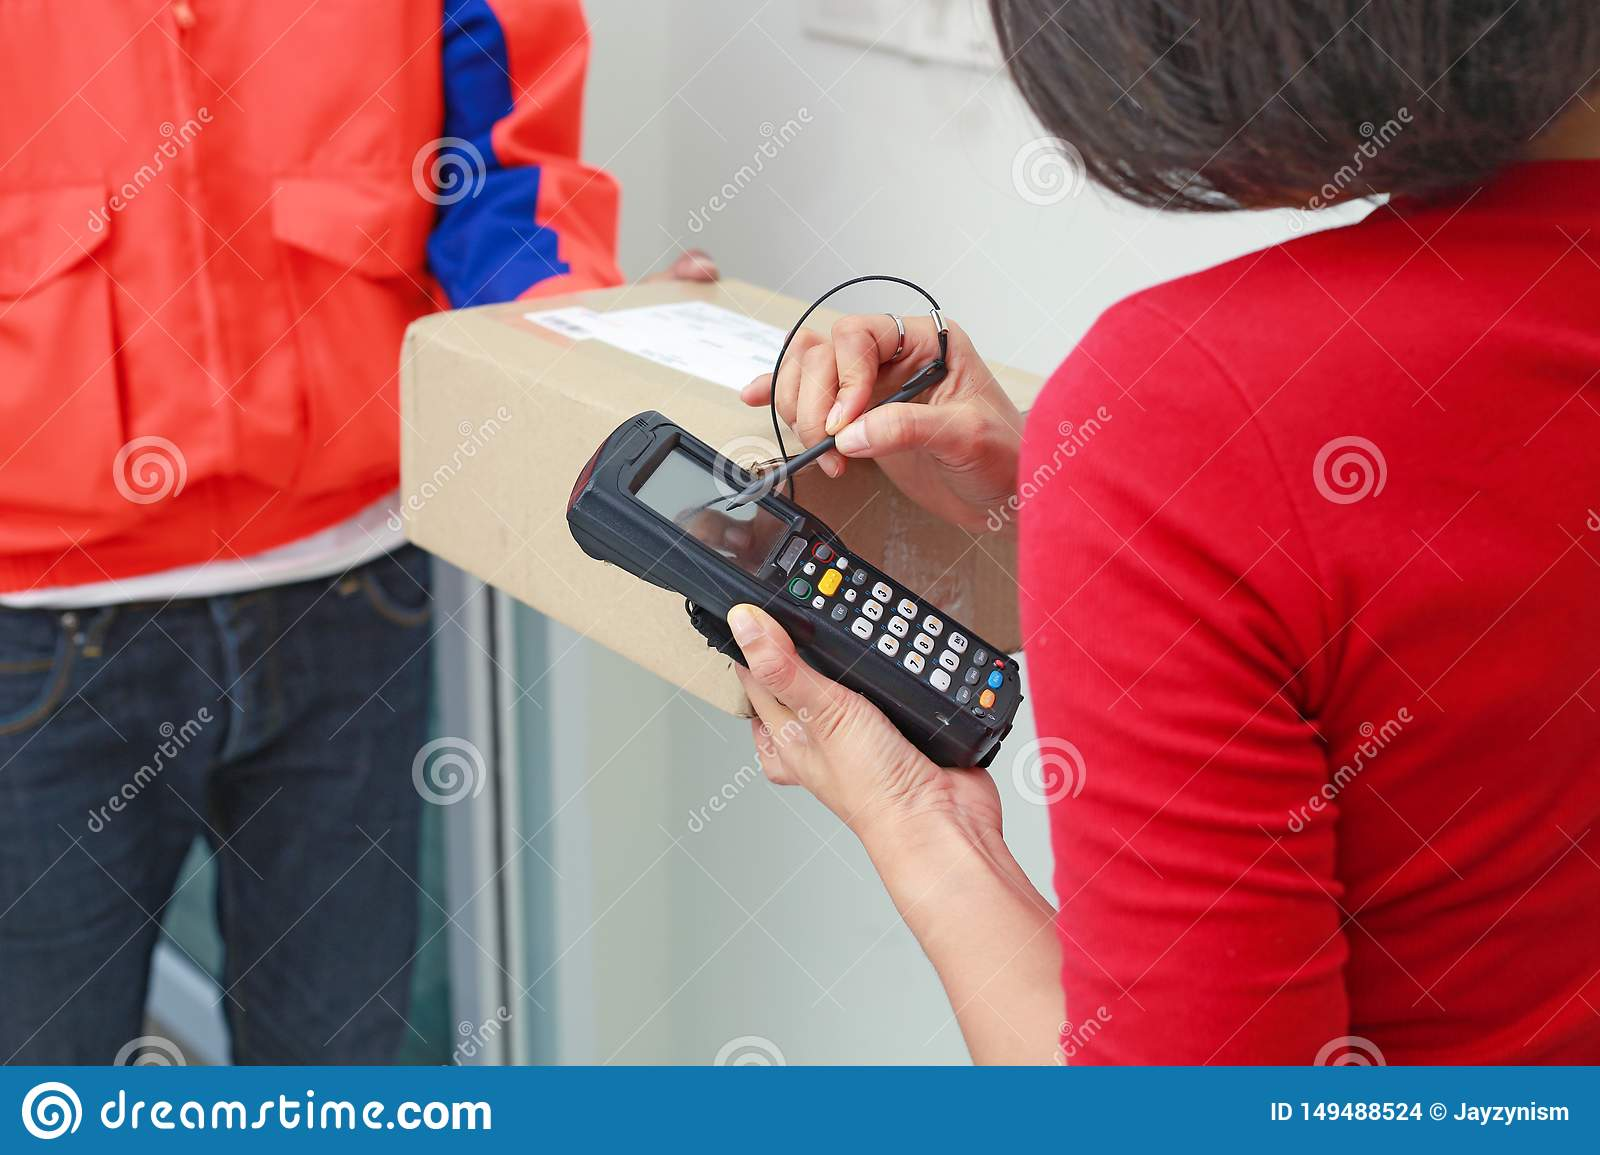 Young woman sign in digital mobile phone after receiving parcel at home